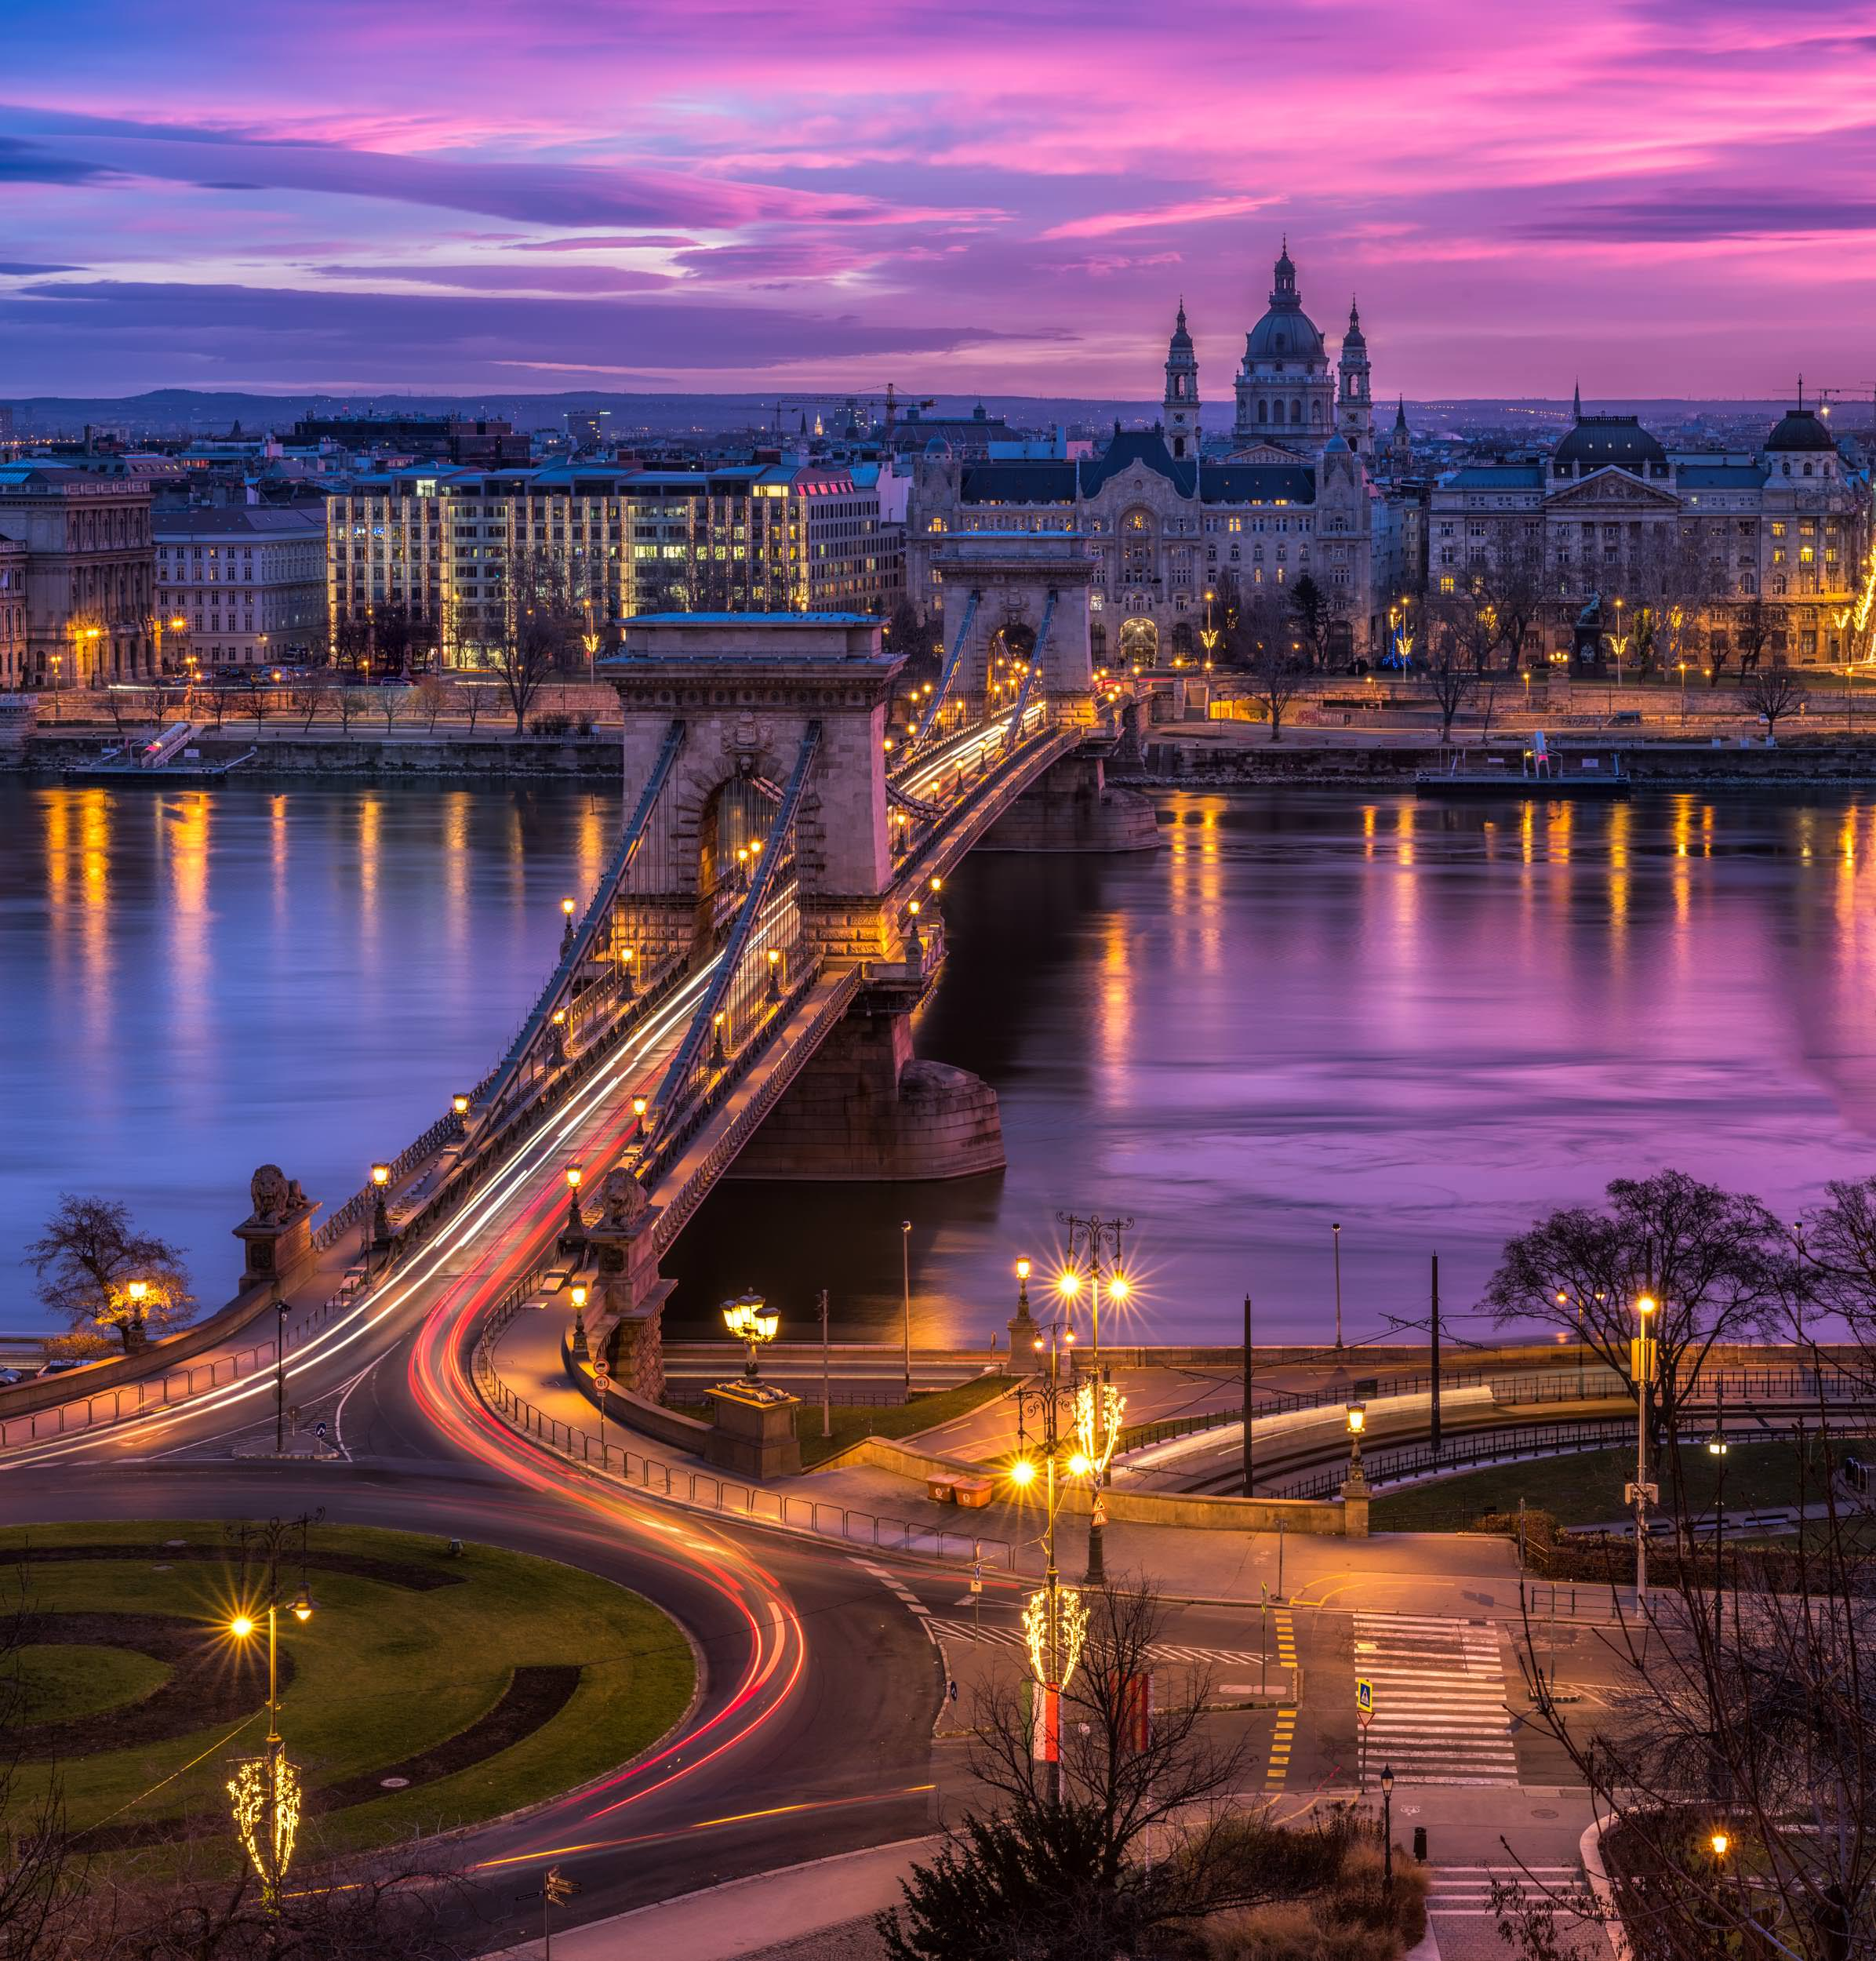 Pink Sky in Budapest - Hungary - City Photography